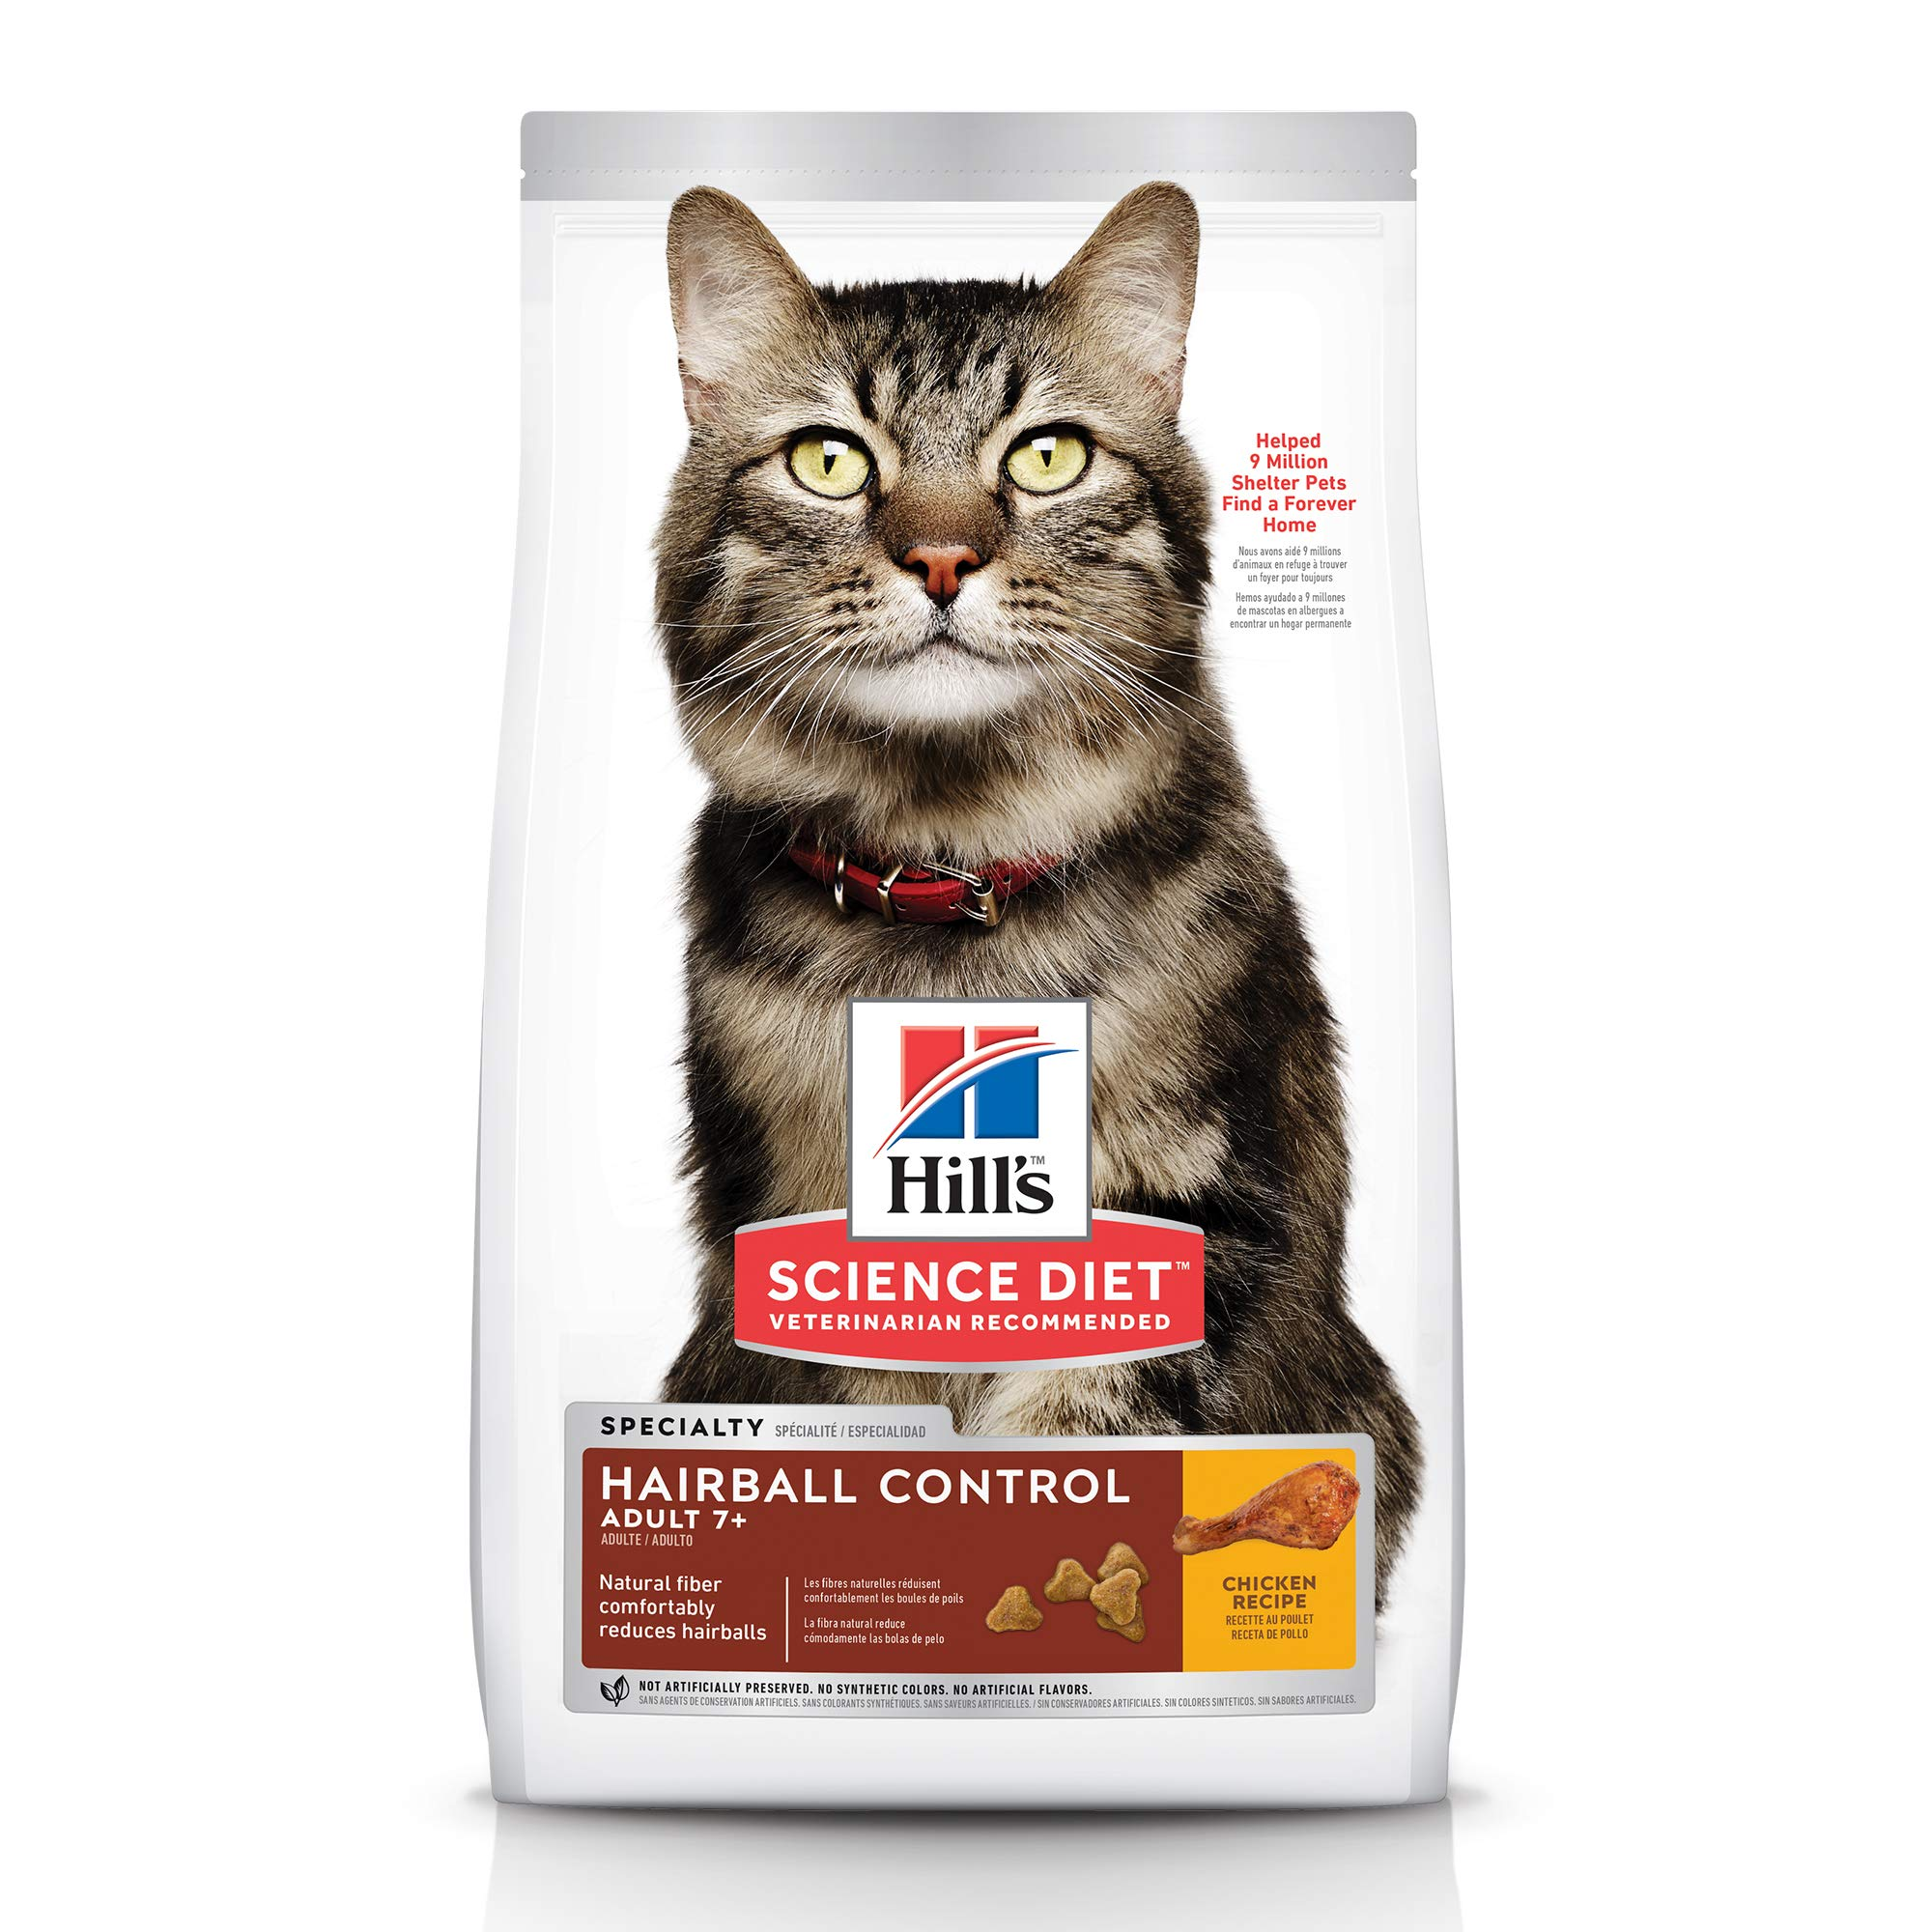 Hill's Science Diet Dry Cat Food, Adult 7+ for Senior Cats, Hairball Control, Chicken Recipe, 15.5 lb Bag by Hill's Science Diet